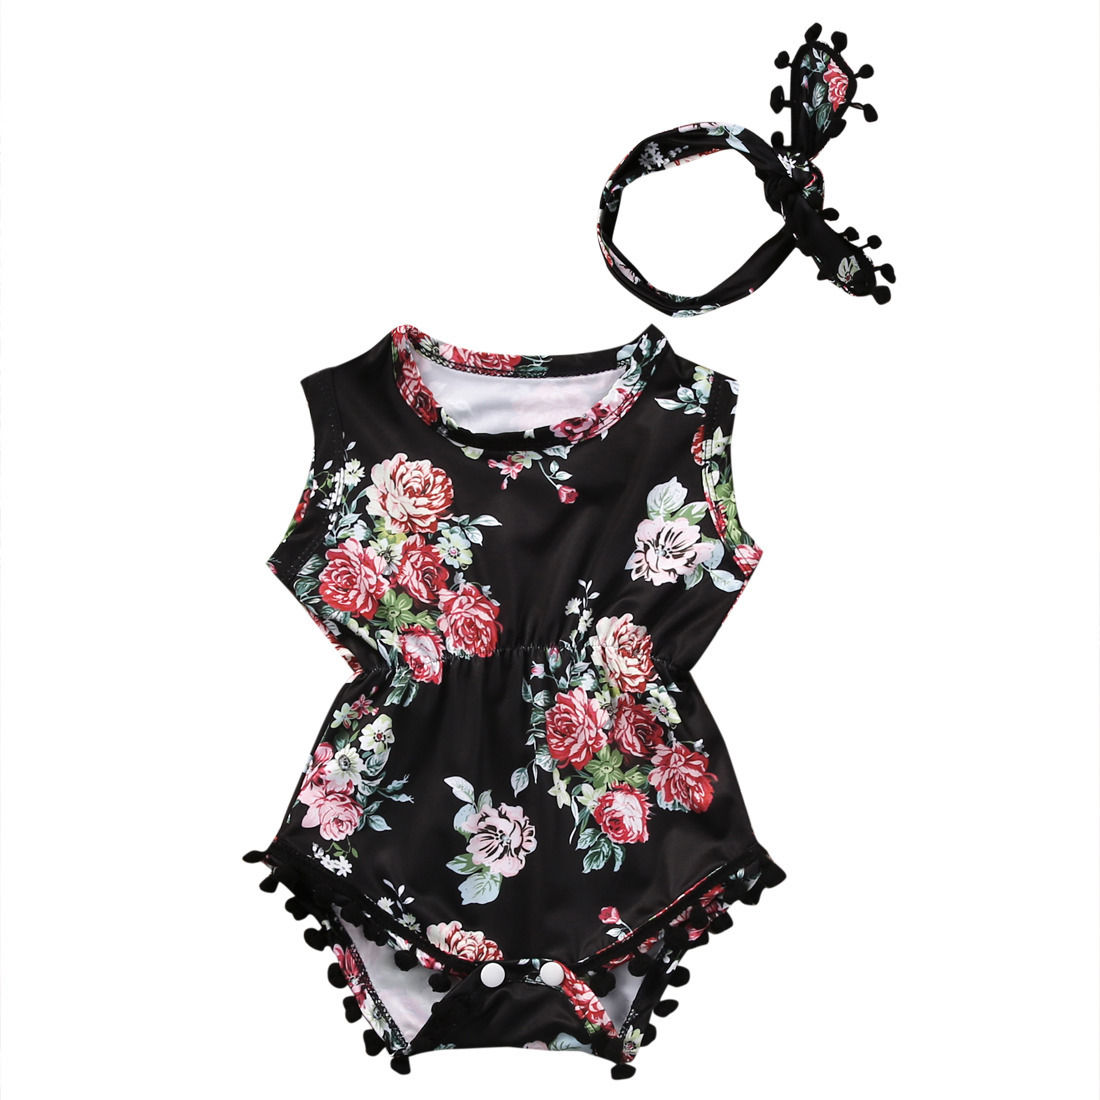 Toddler Ifantil Newborn font b Baby b font Girls Floral Cute Romper One pieces Sunsuit Headband